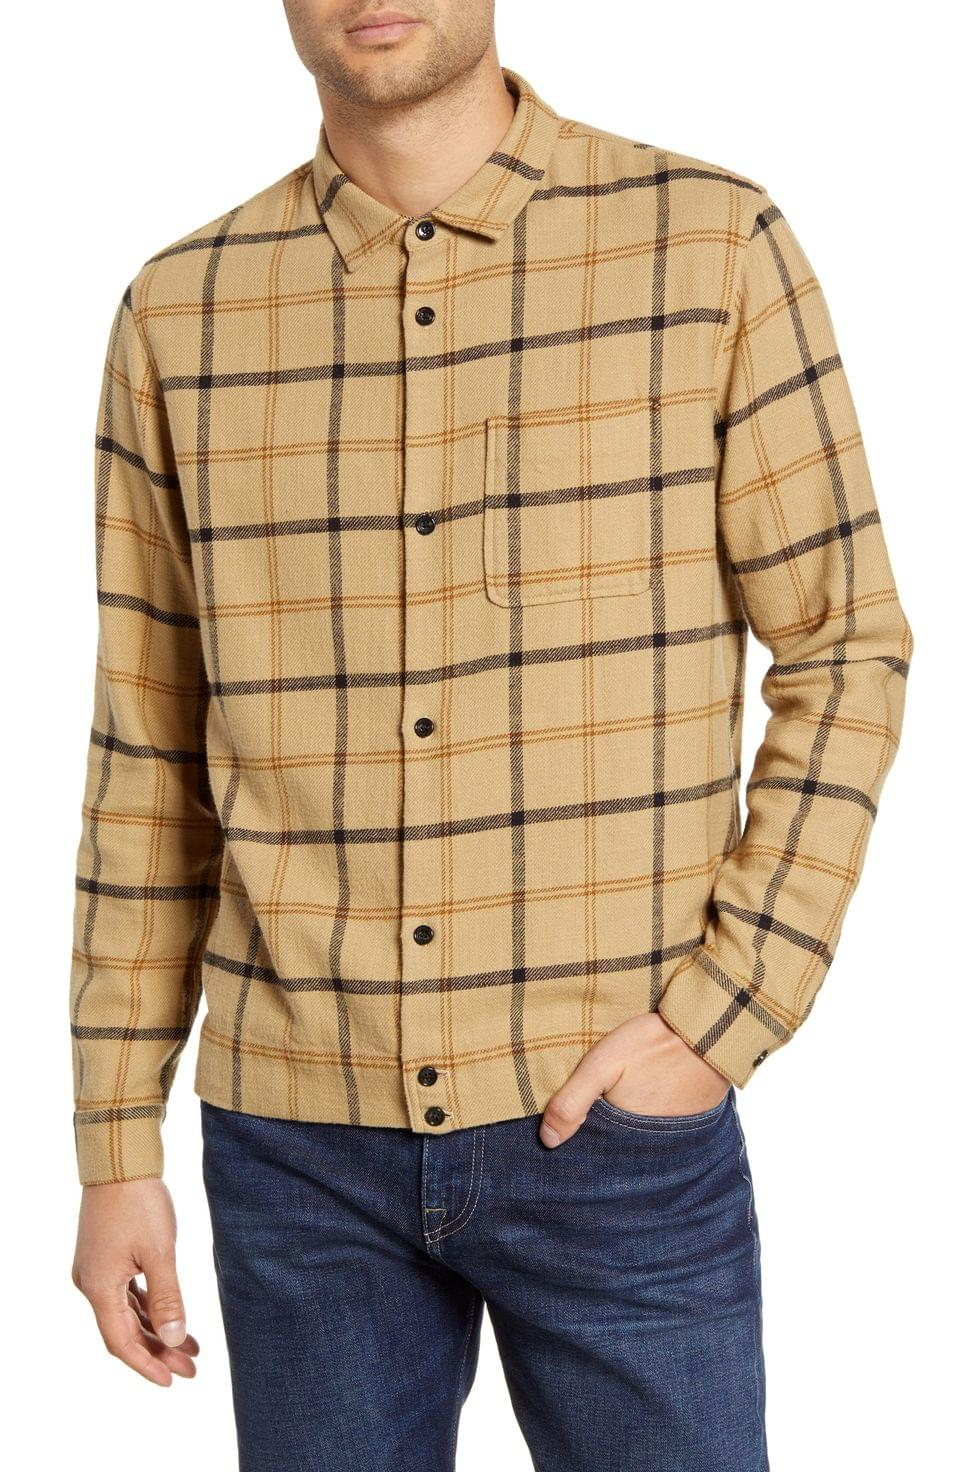 Men's BLDWN Dodd Regular Fit Button-Up Flannel Shirt Jacket